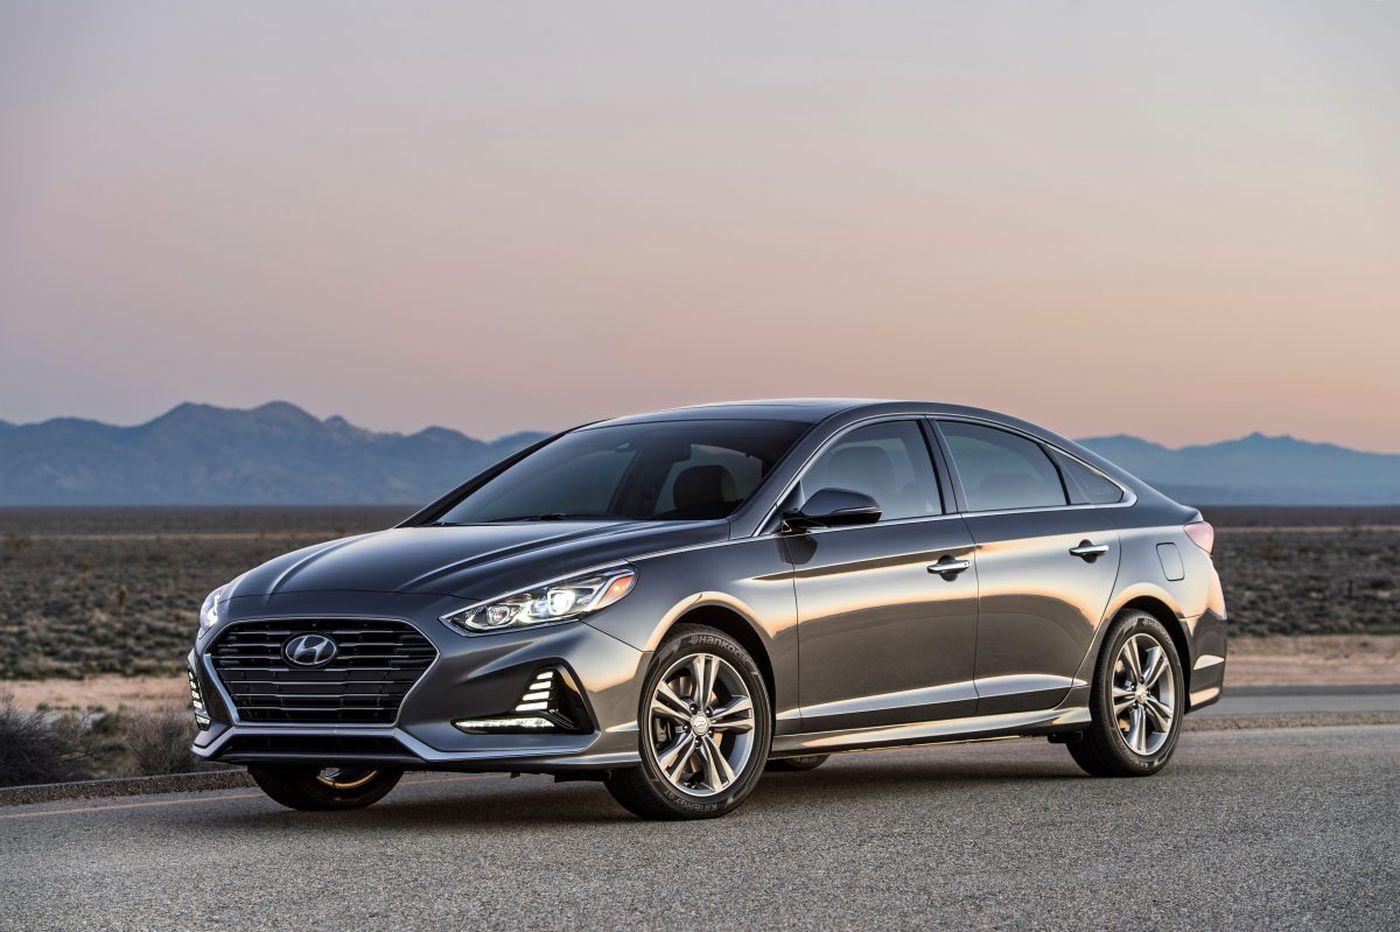 Hyundai Sonata continues solid performance with 2018 redesign